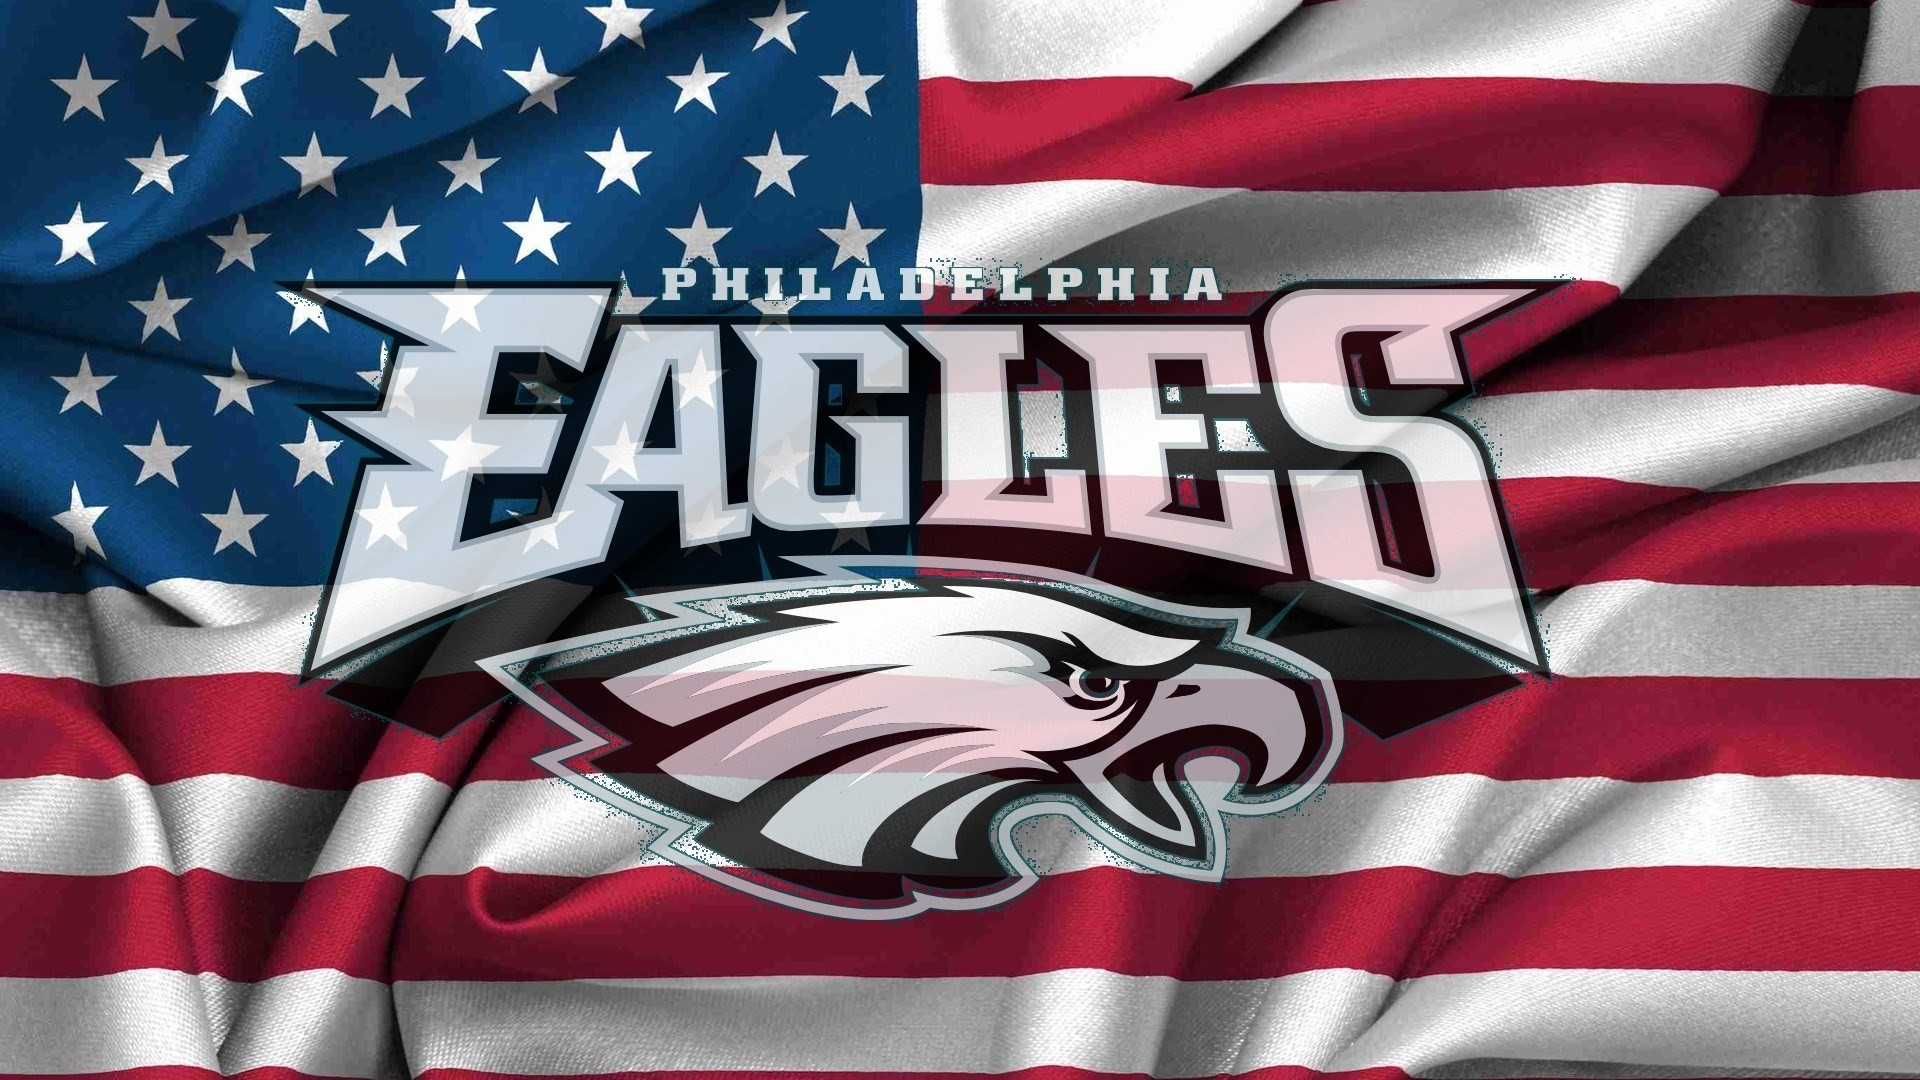 1920x1080 + ideas about Philadelphia Eagles Wallpaper on Pinterest 2048×1463 Free Philadelphia  Eagles Wallpapers | Adorable Wallpapers | Desktop | Pinterest ...